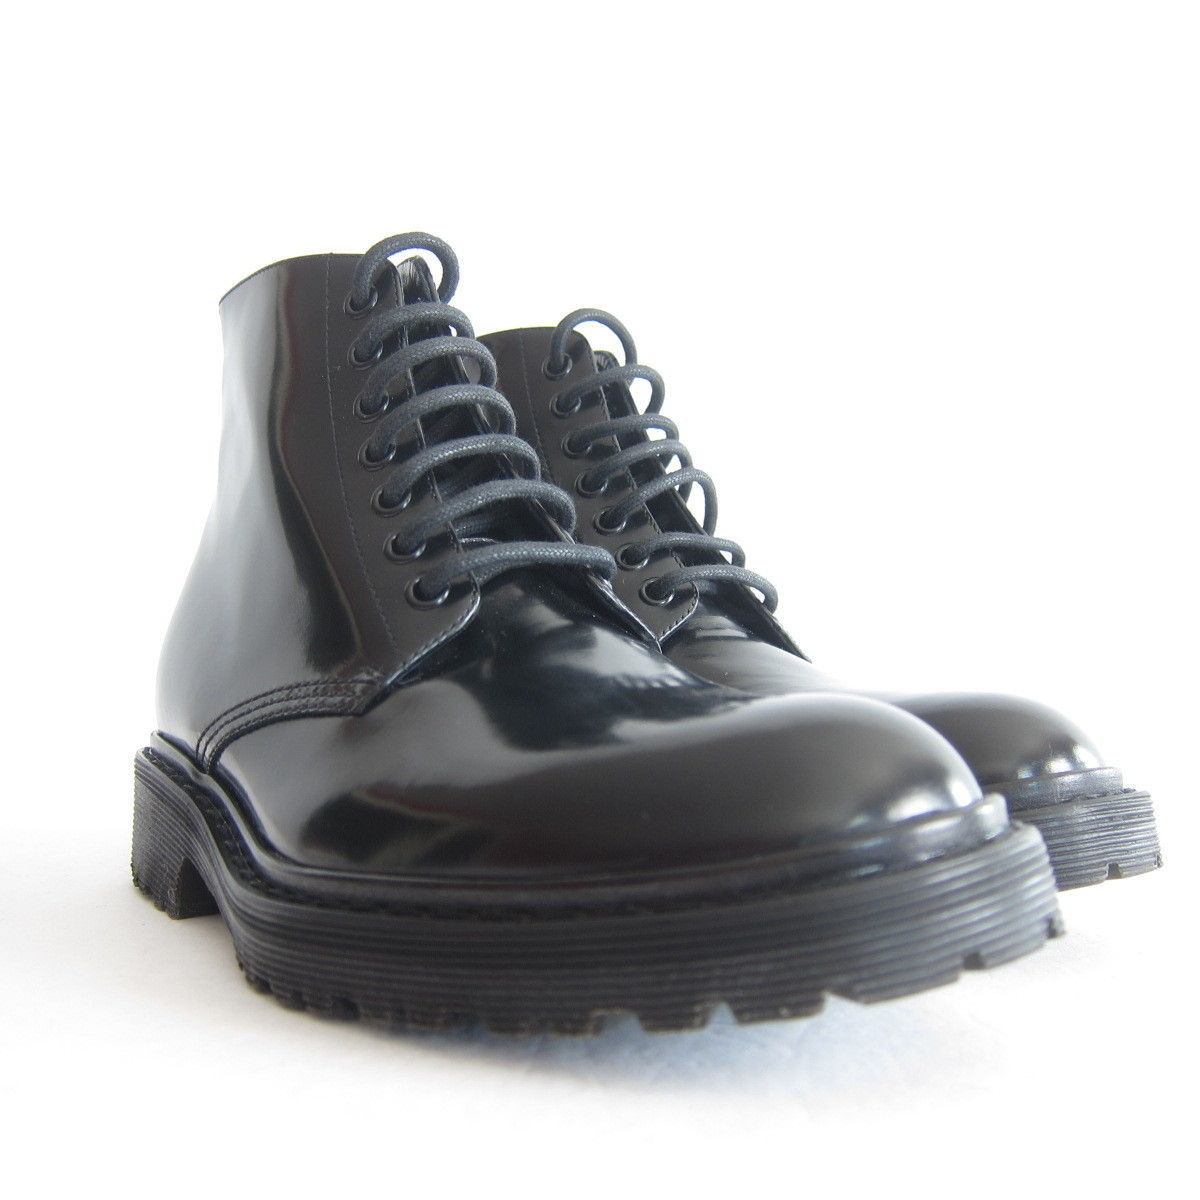 744cbbdee1c P-253100 New St Laurent Black Patent Leather and 50 similar items